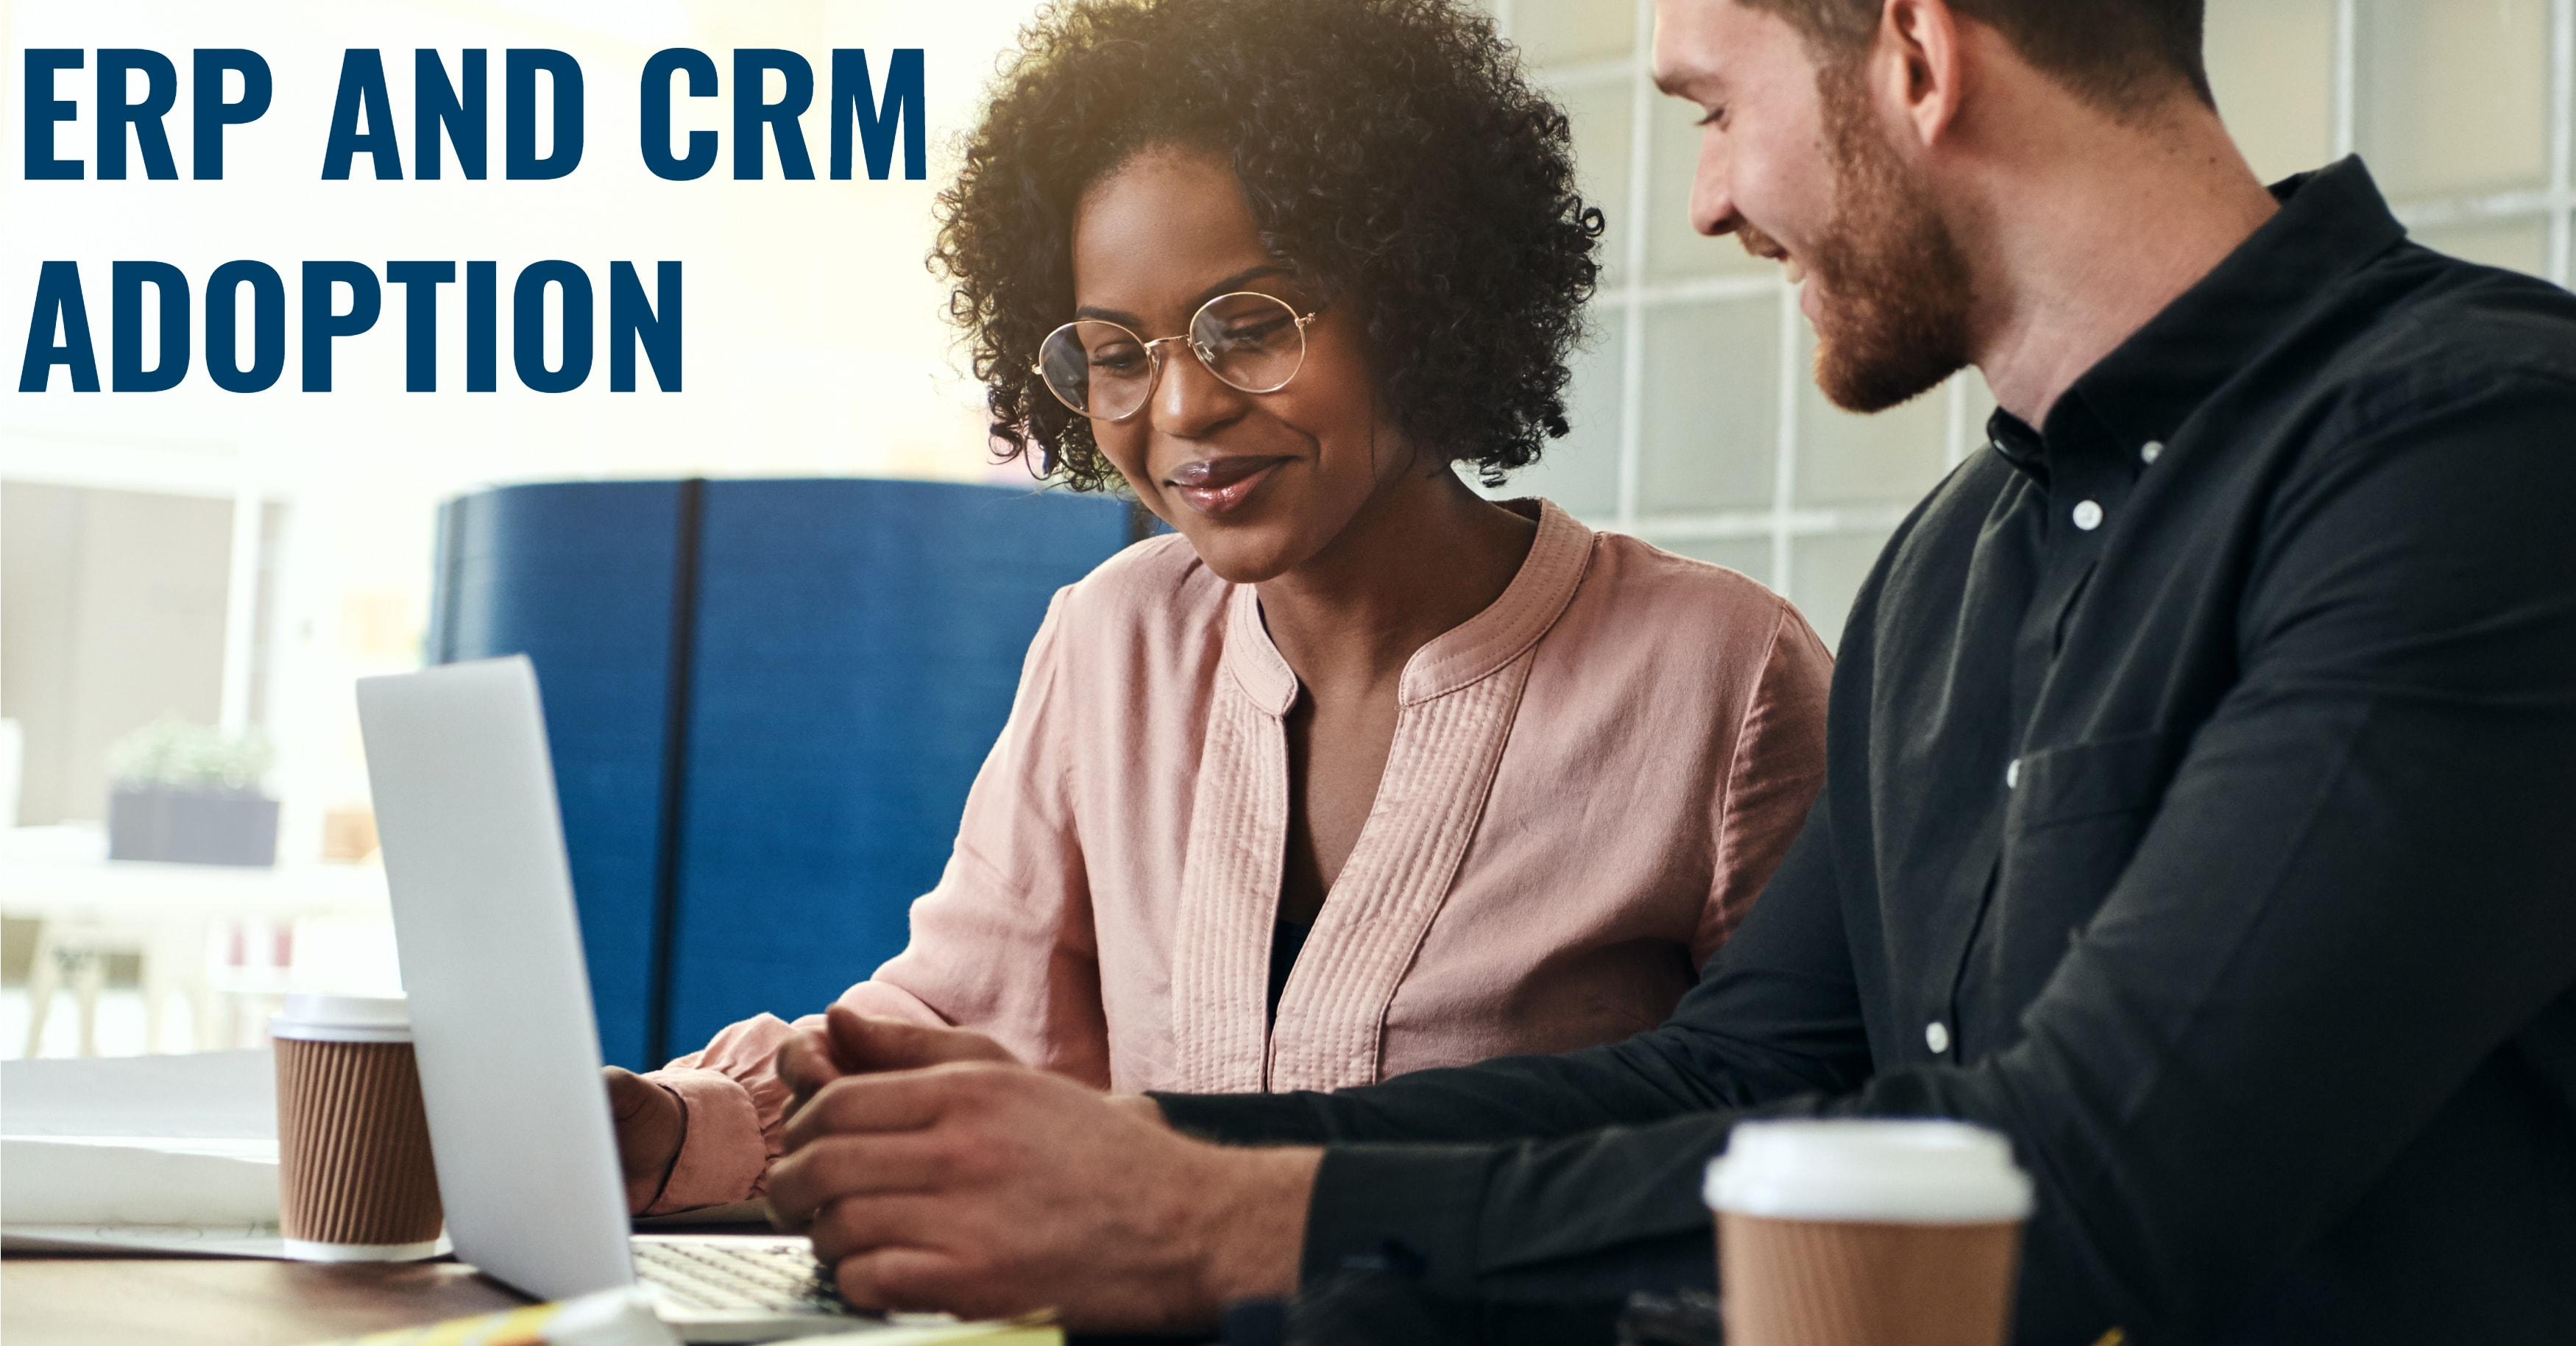 How to Promote ERP and CRM Adoption